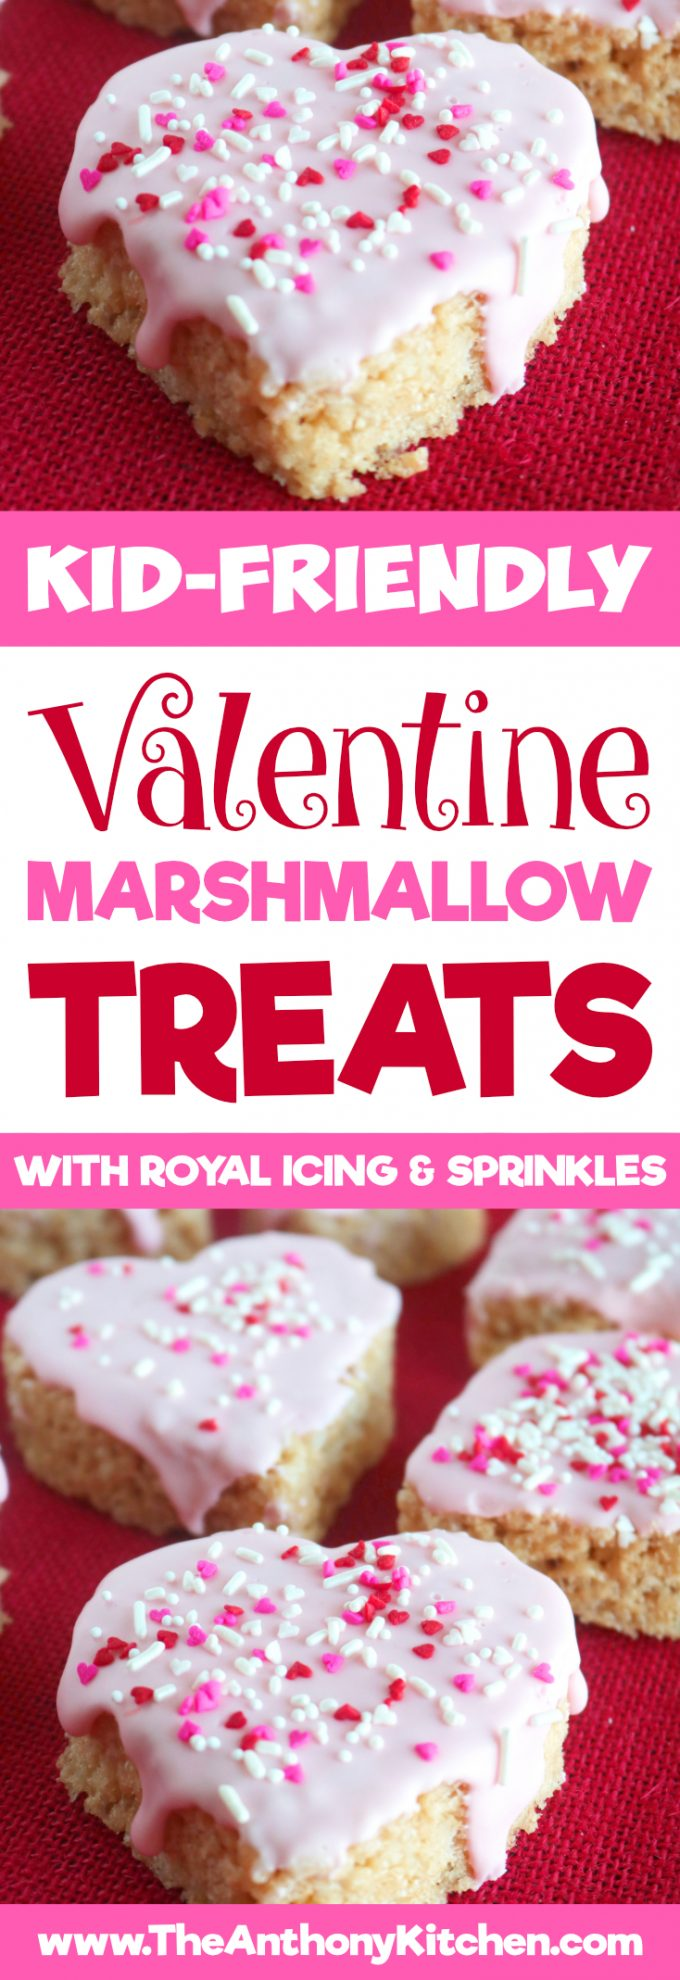 KID FRIENDLY VALENTINES DAY TREAT